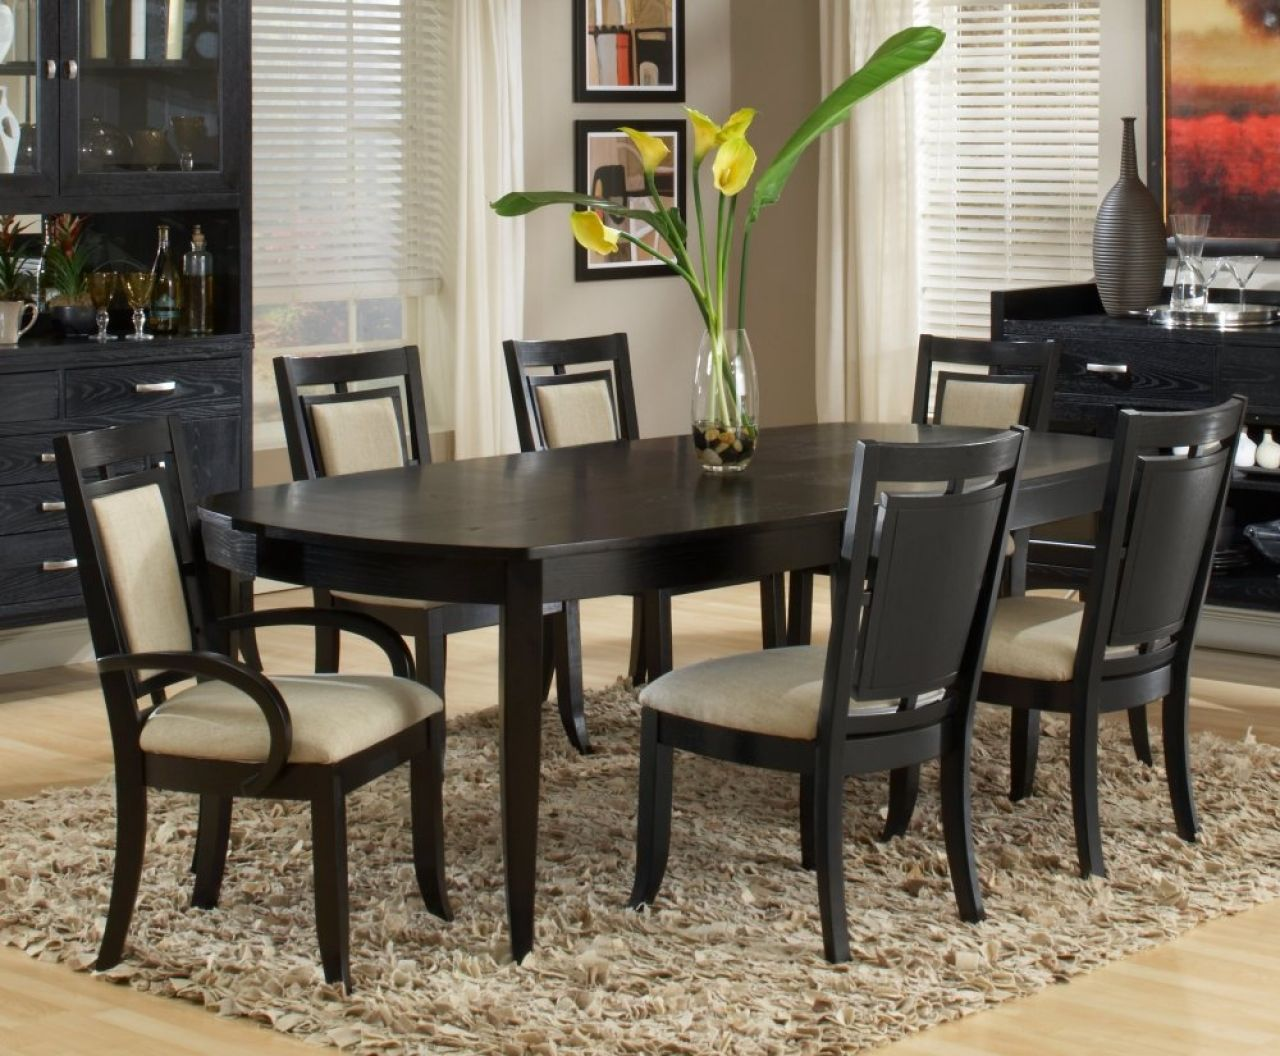 decorlala Dining Room Table dining room